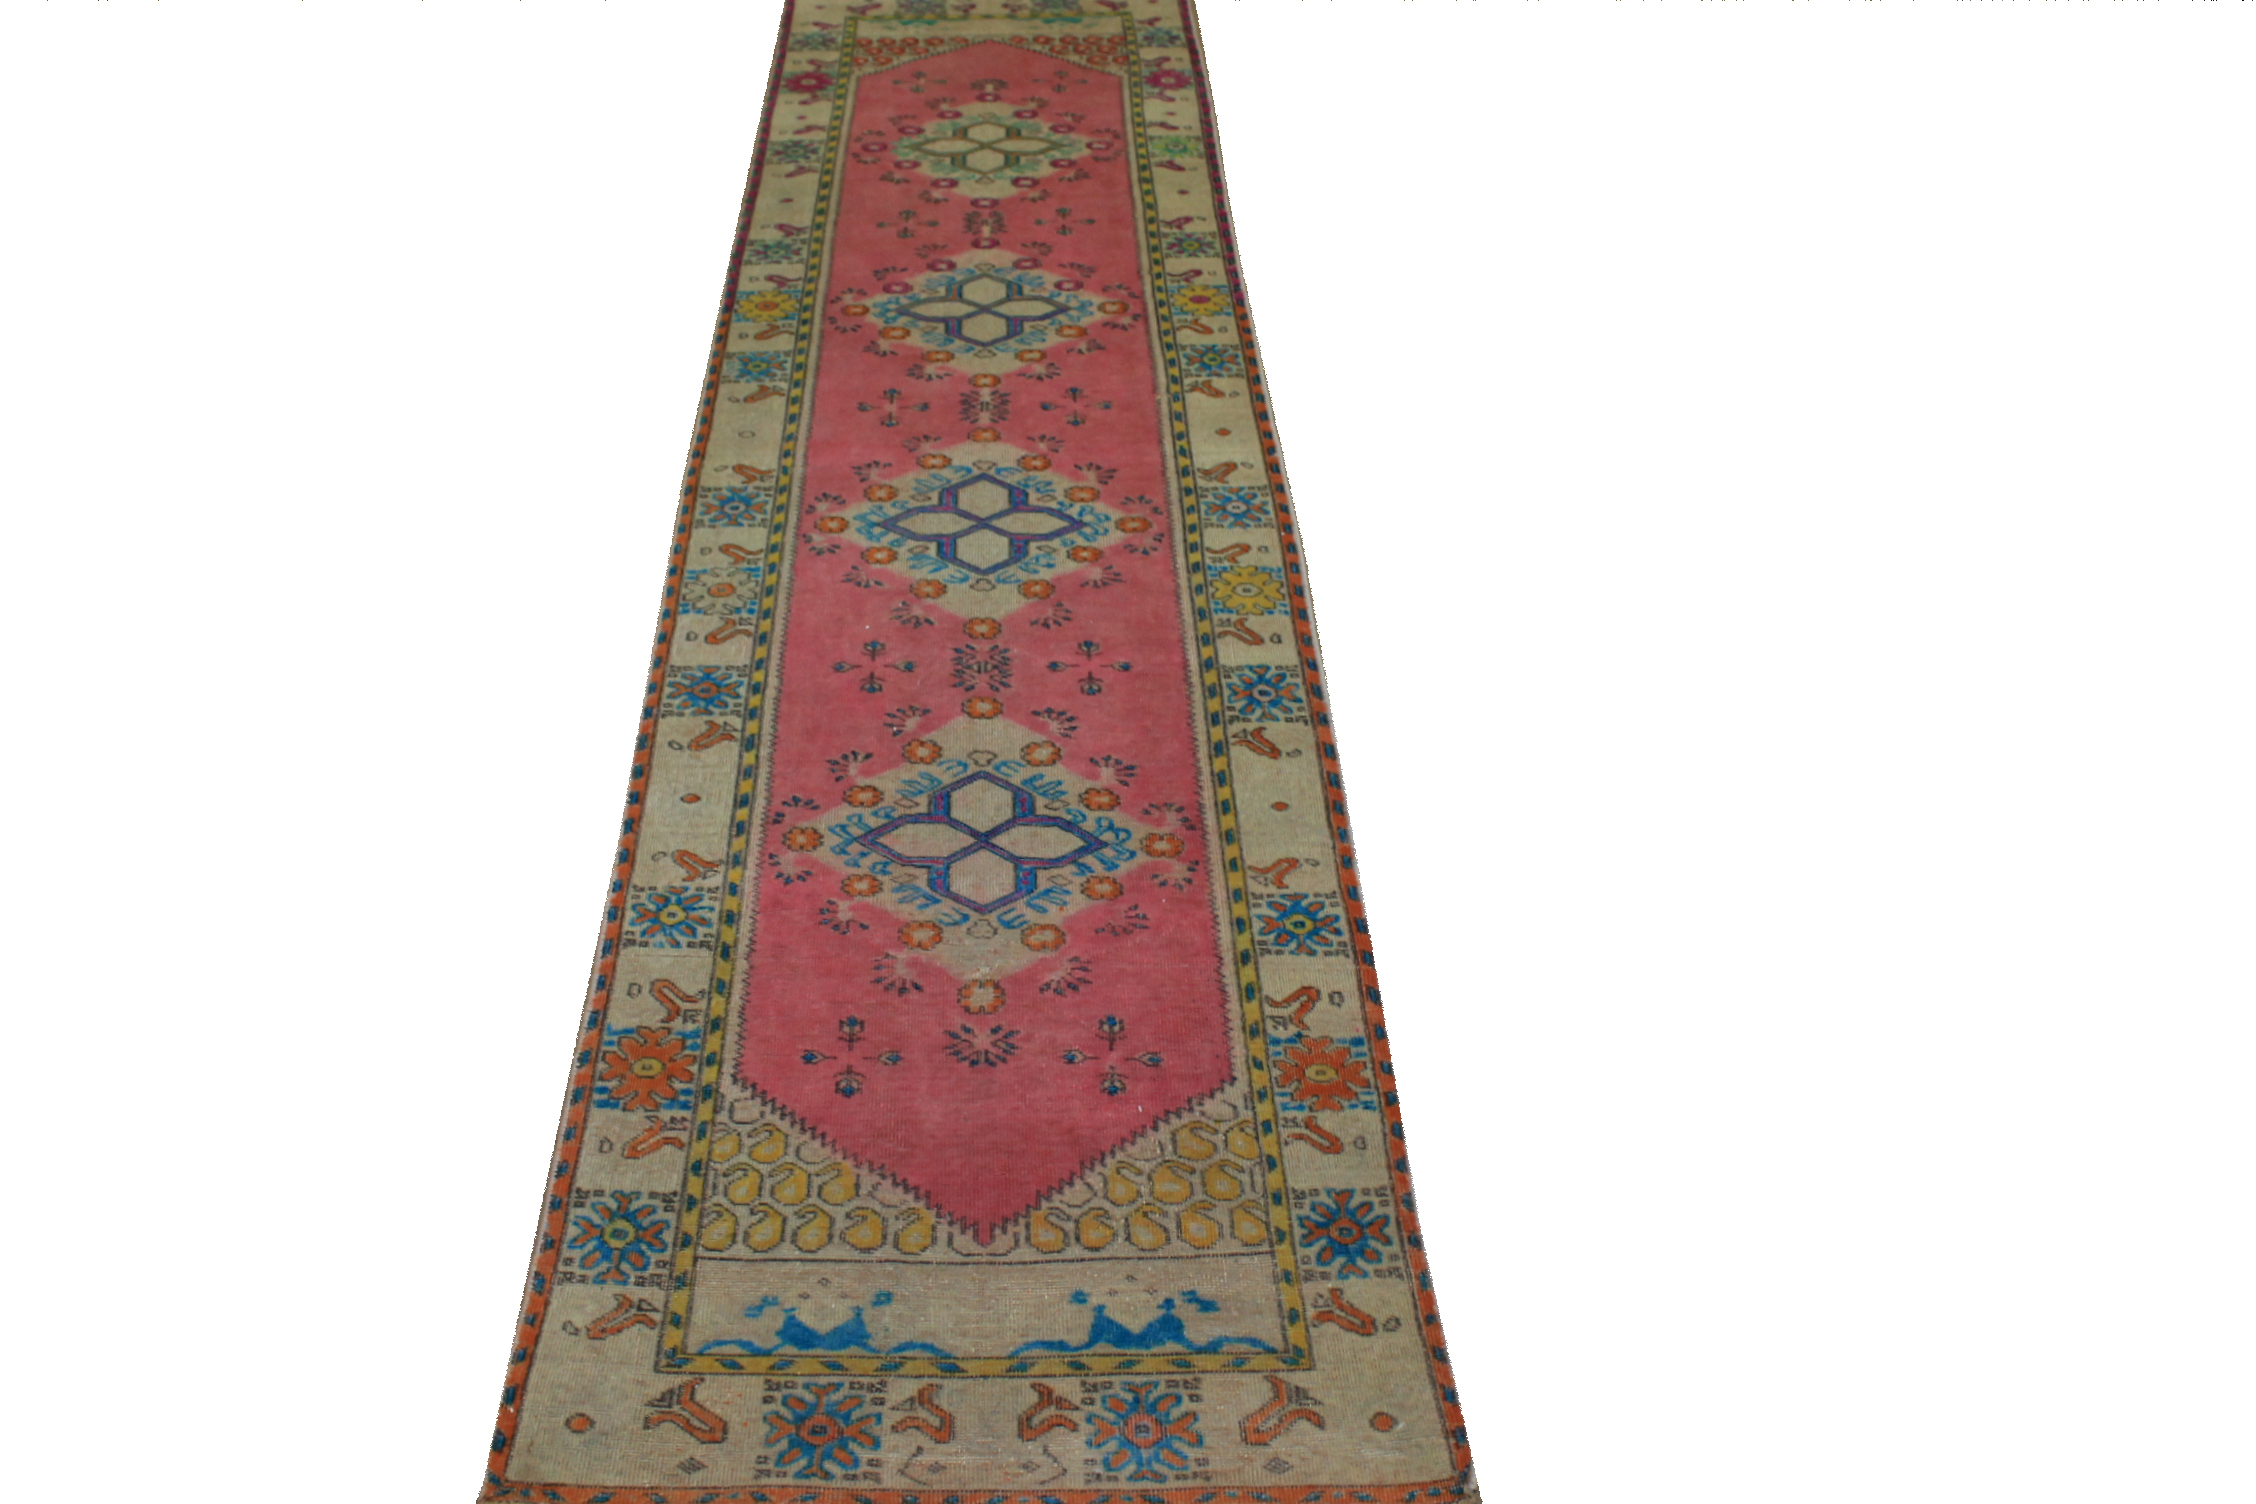 10 ft. Runner Vintage Hand Knotted Wool Area Rug - MR024455